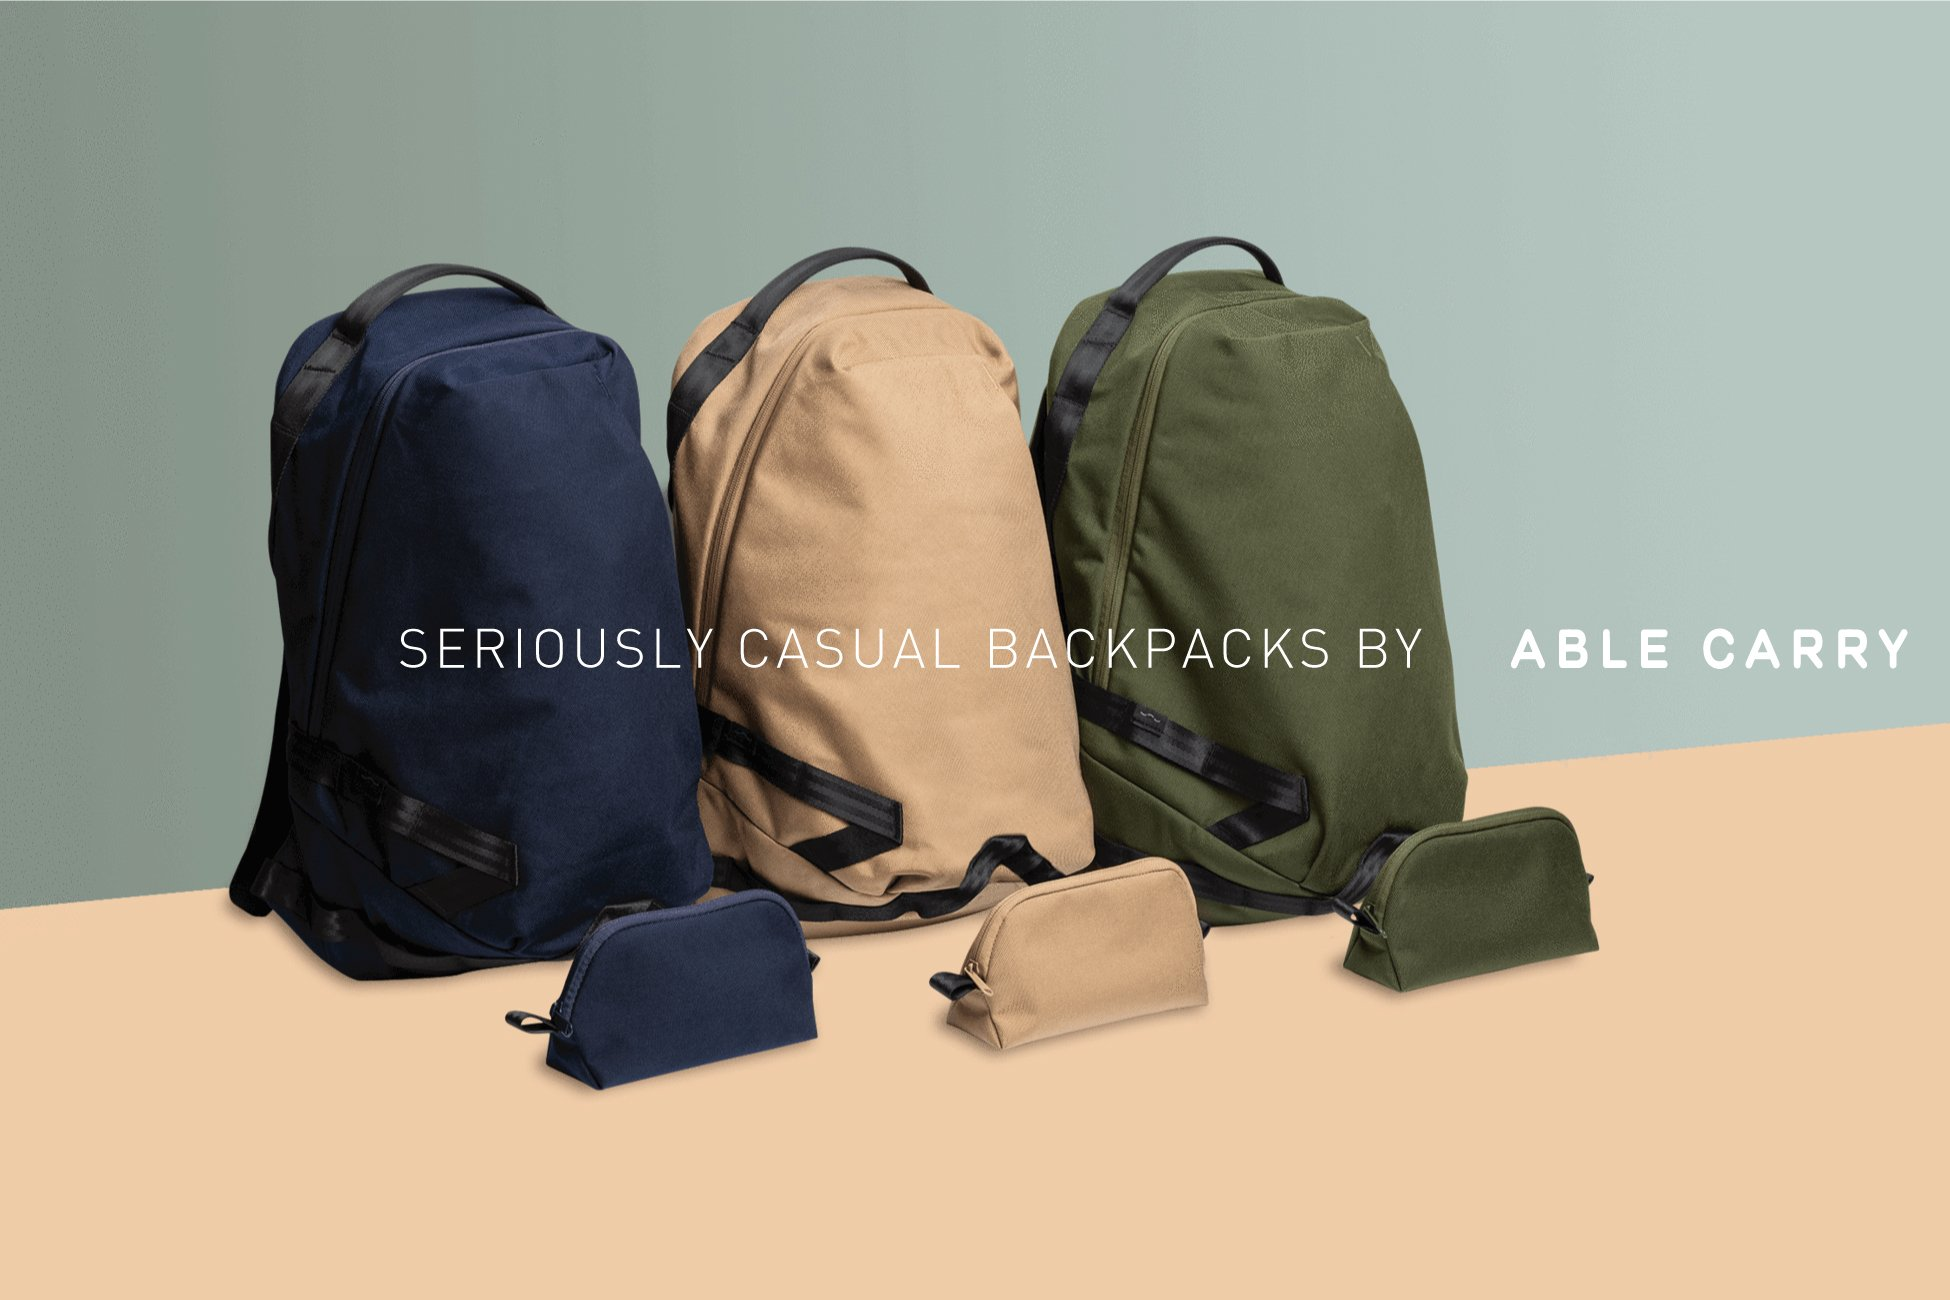 78e6a7023b The Daily Backpack by Able Carry – The Bag Creature